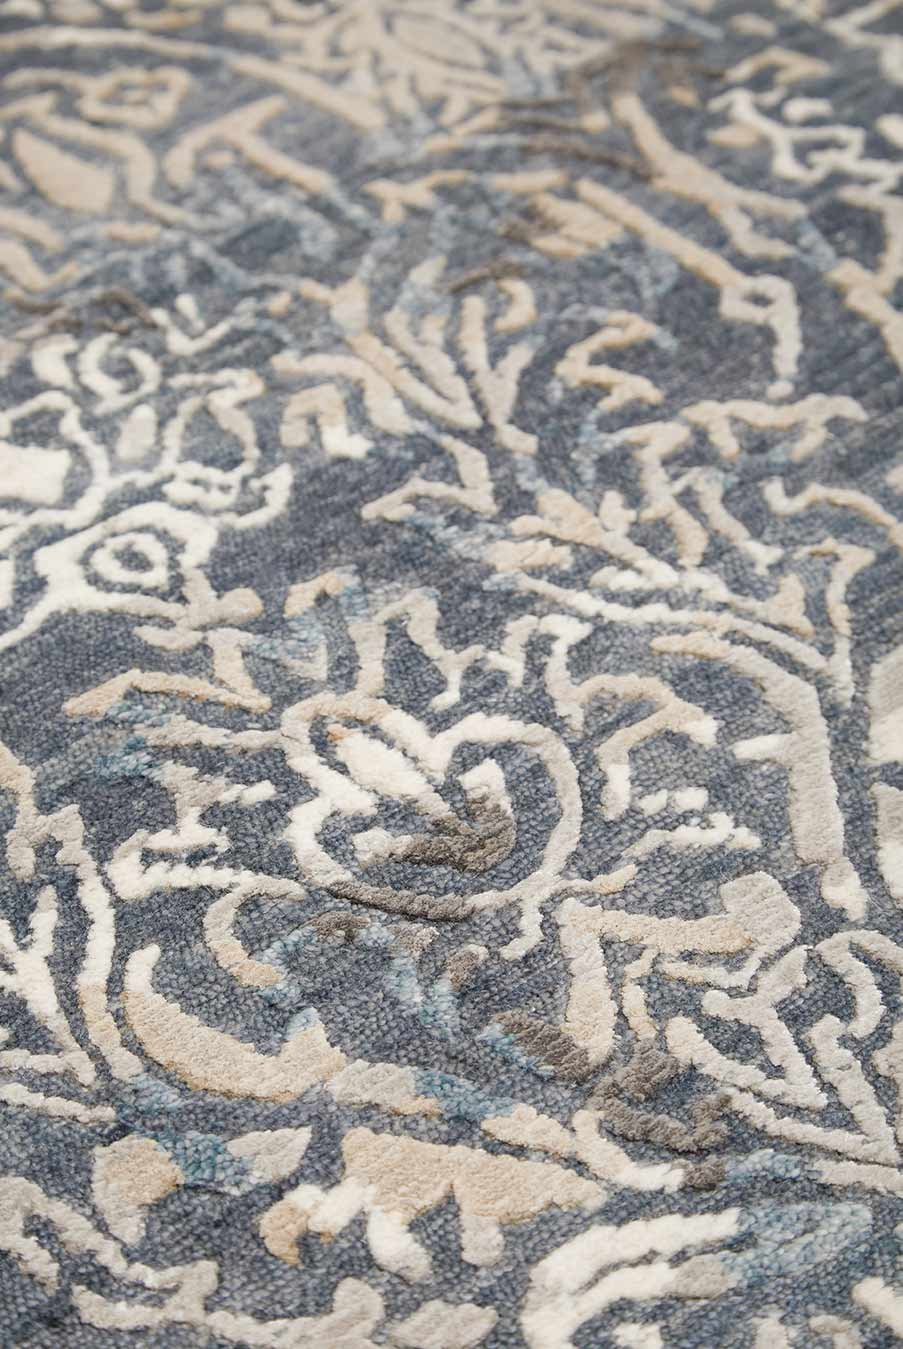 Detailed image of traditional Pichola handknot rug in blue colour